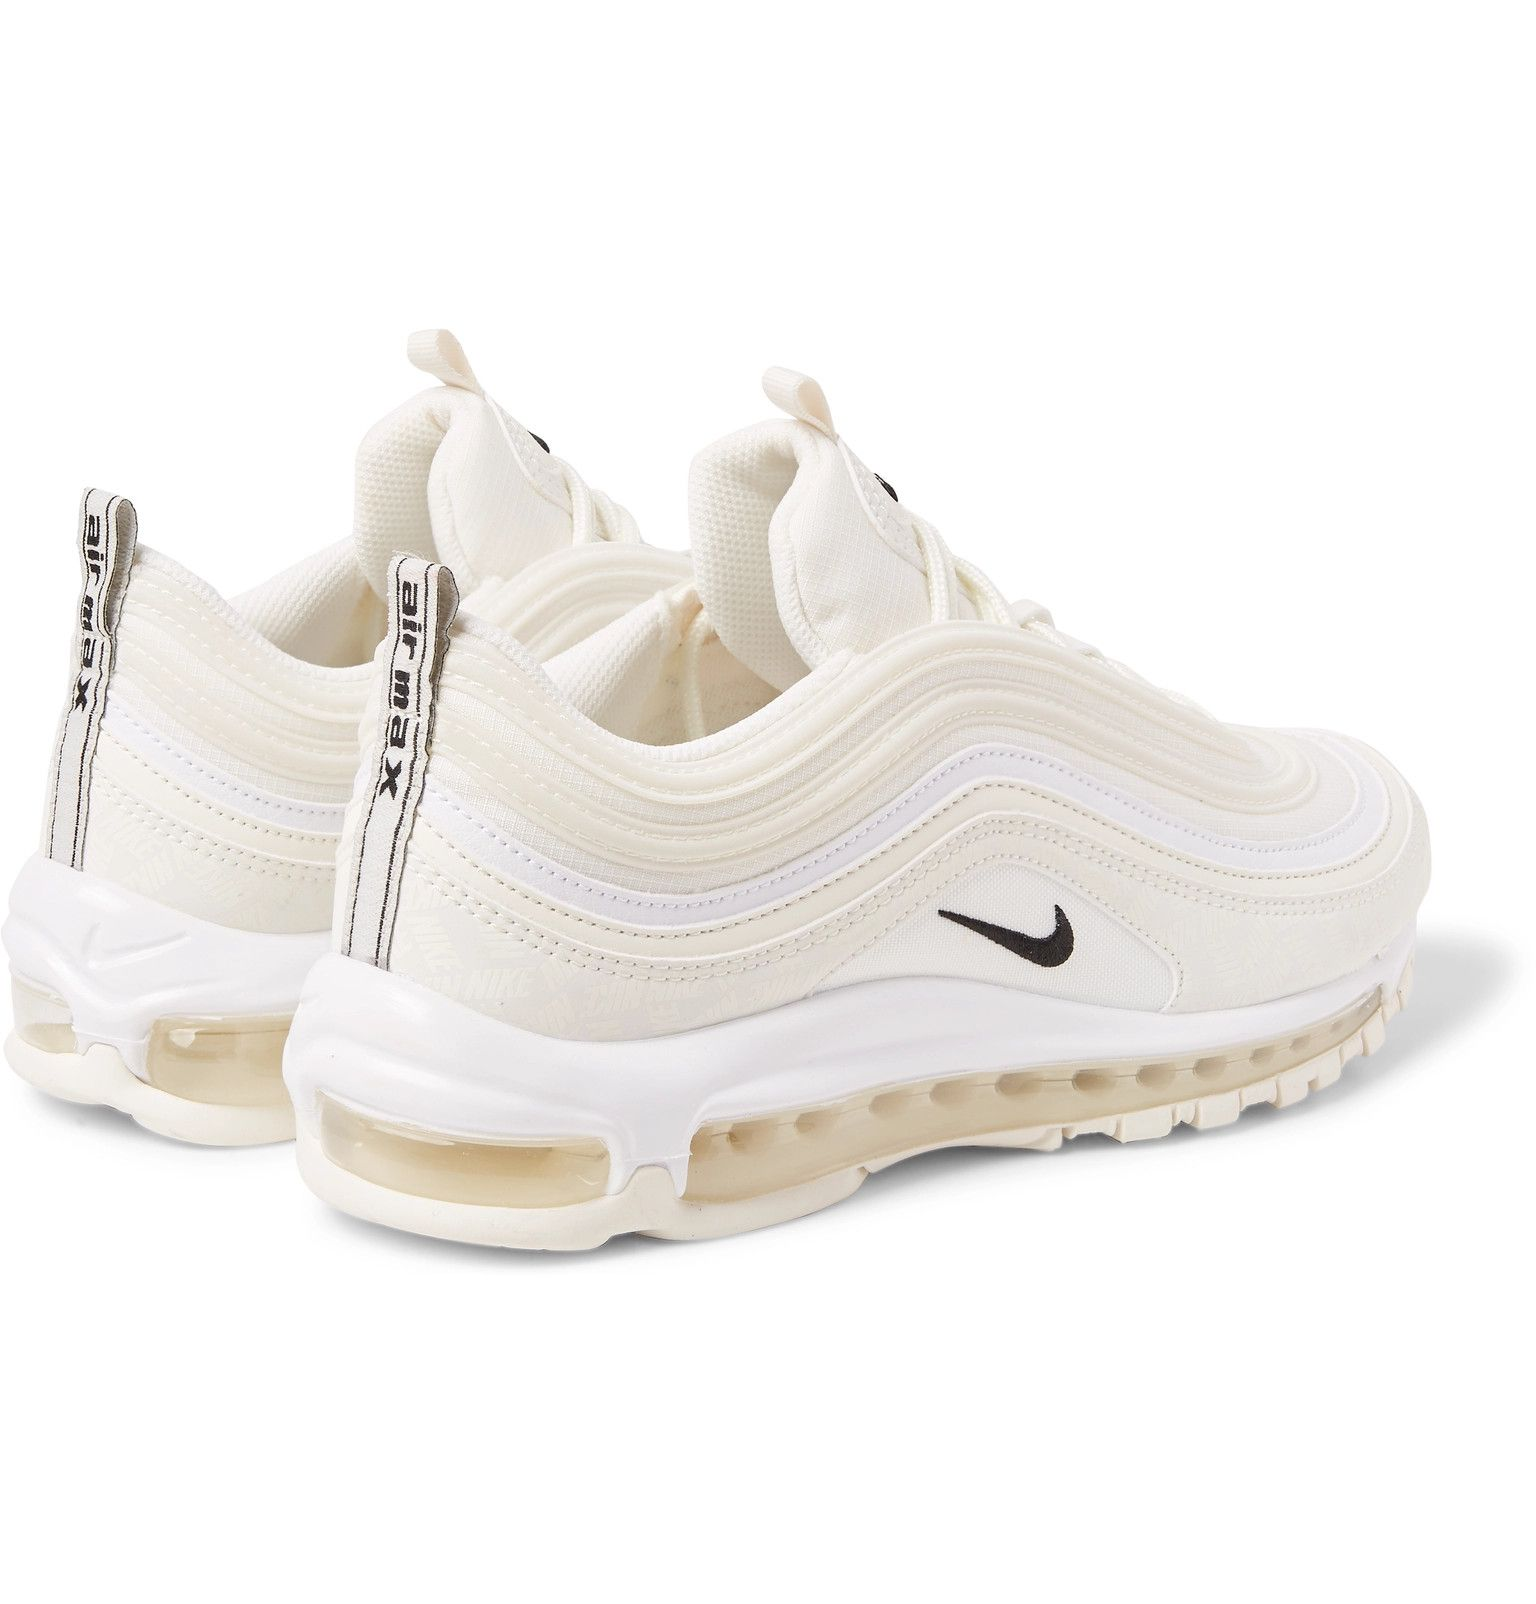 a4c10f2a182a3 Nike - Air Max 97 Future Tech Leather-Trimmed Ripstop Sneakers | Tags: low  tops, monochromatic, off white, cream